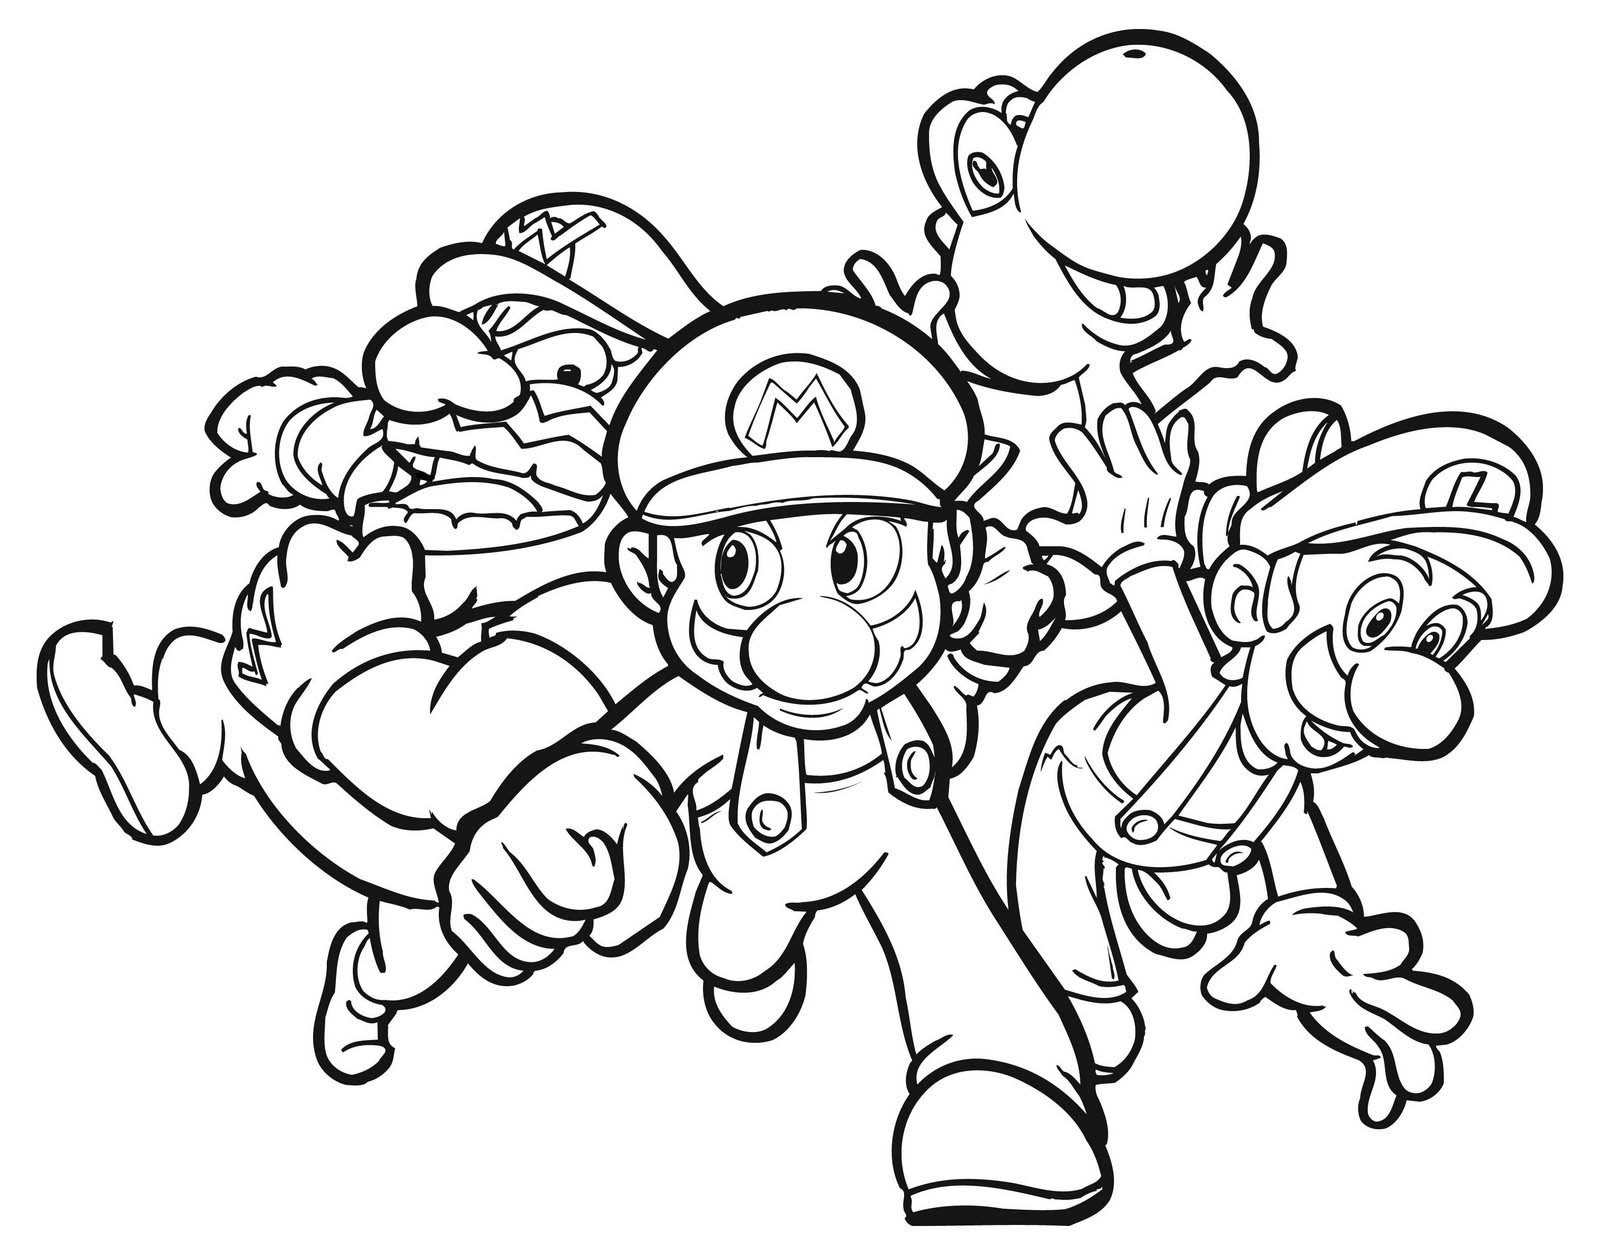 Mario Coloring Pages Free Printable